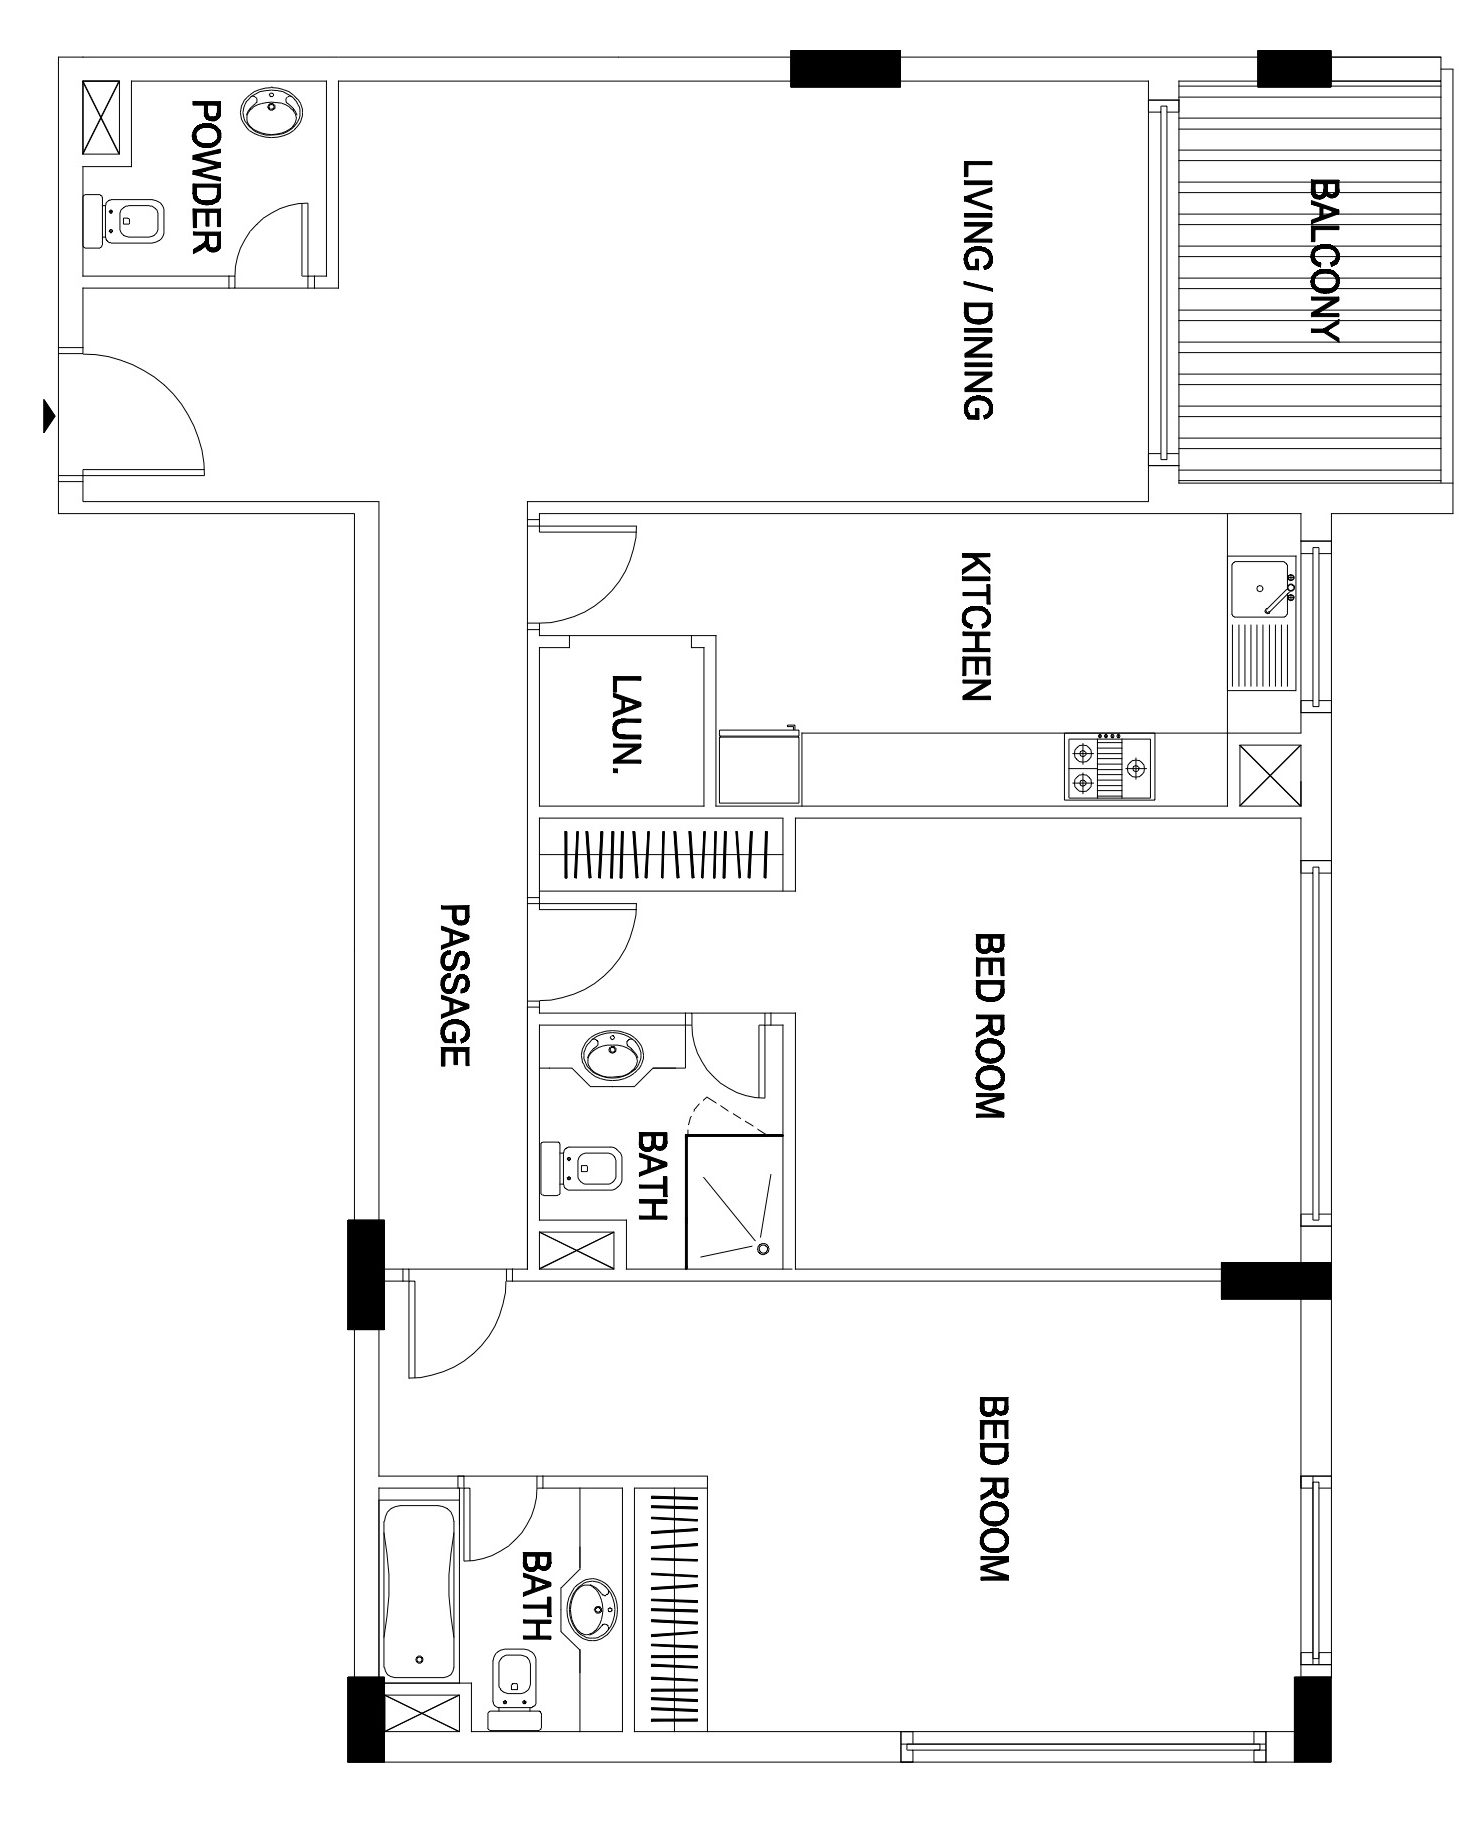 Sobha Daffodil 2bed Floor Plan - JVC, Dubai, UAE